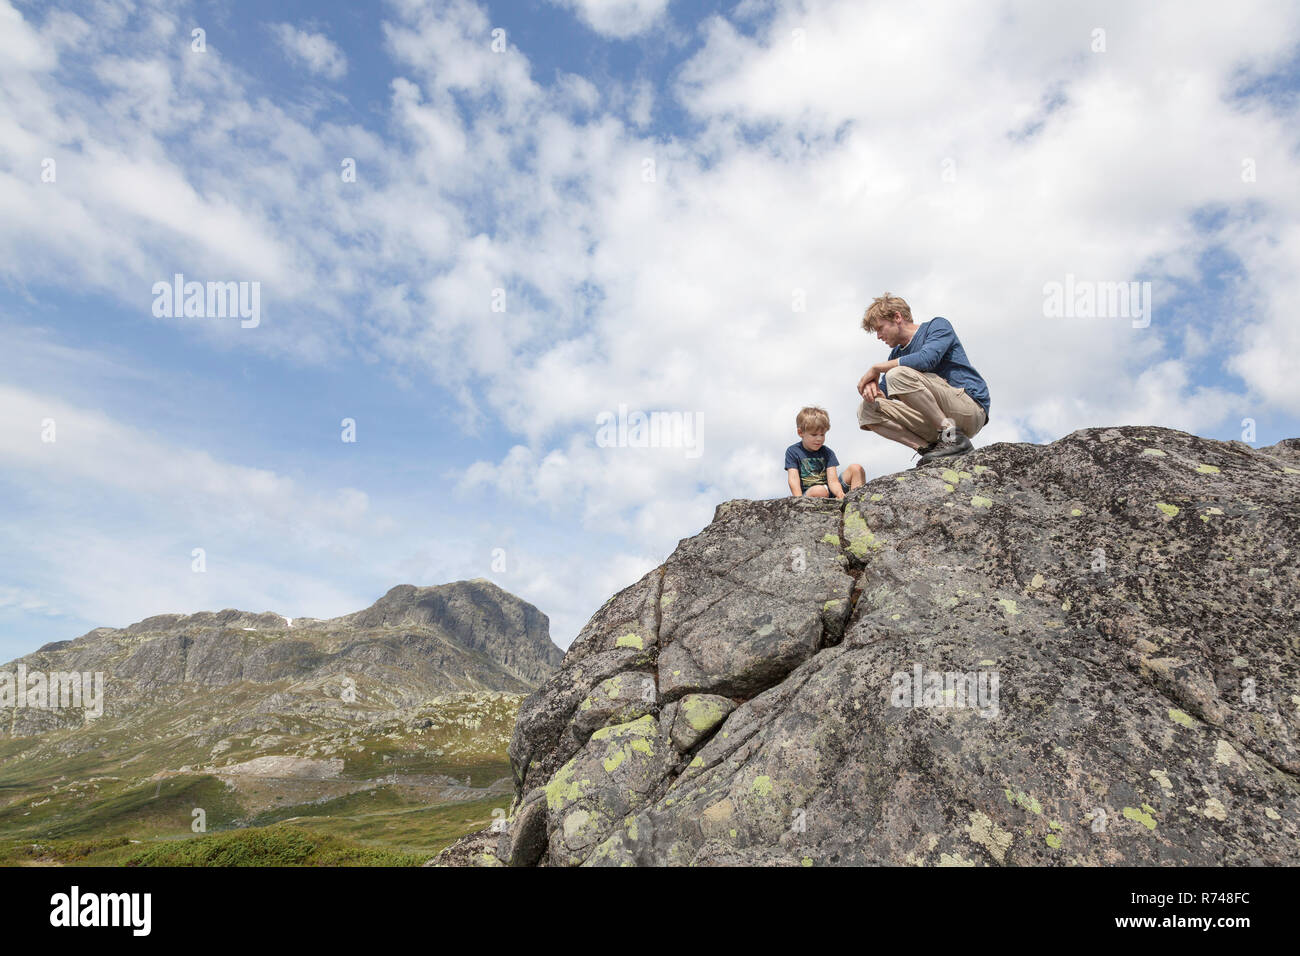 Boy and father crouching on top of rock formation, low angle view, Oppland, Nord-Trondelag, Norway - Stock Image